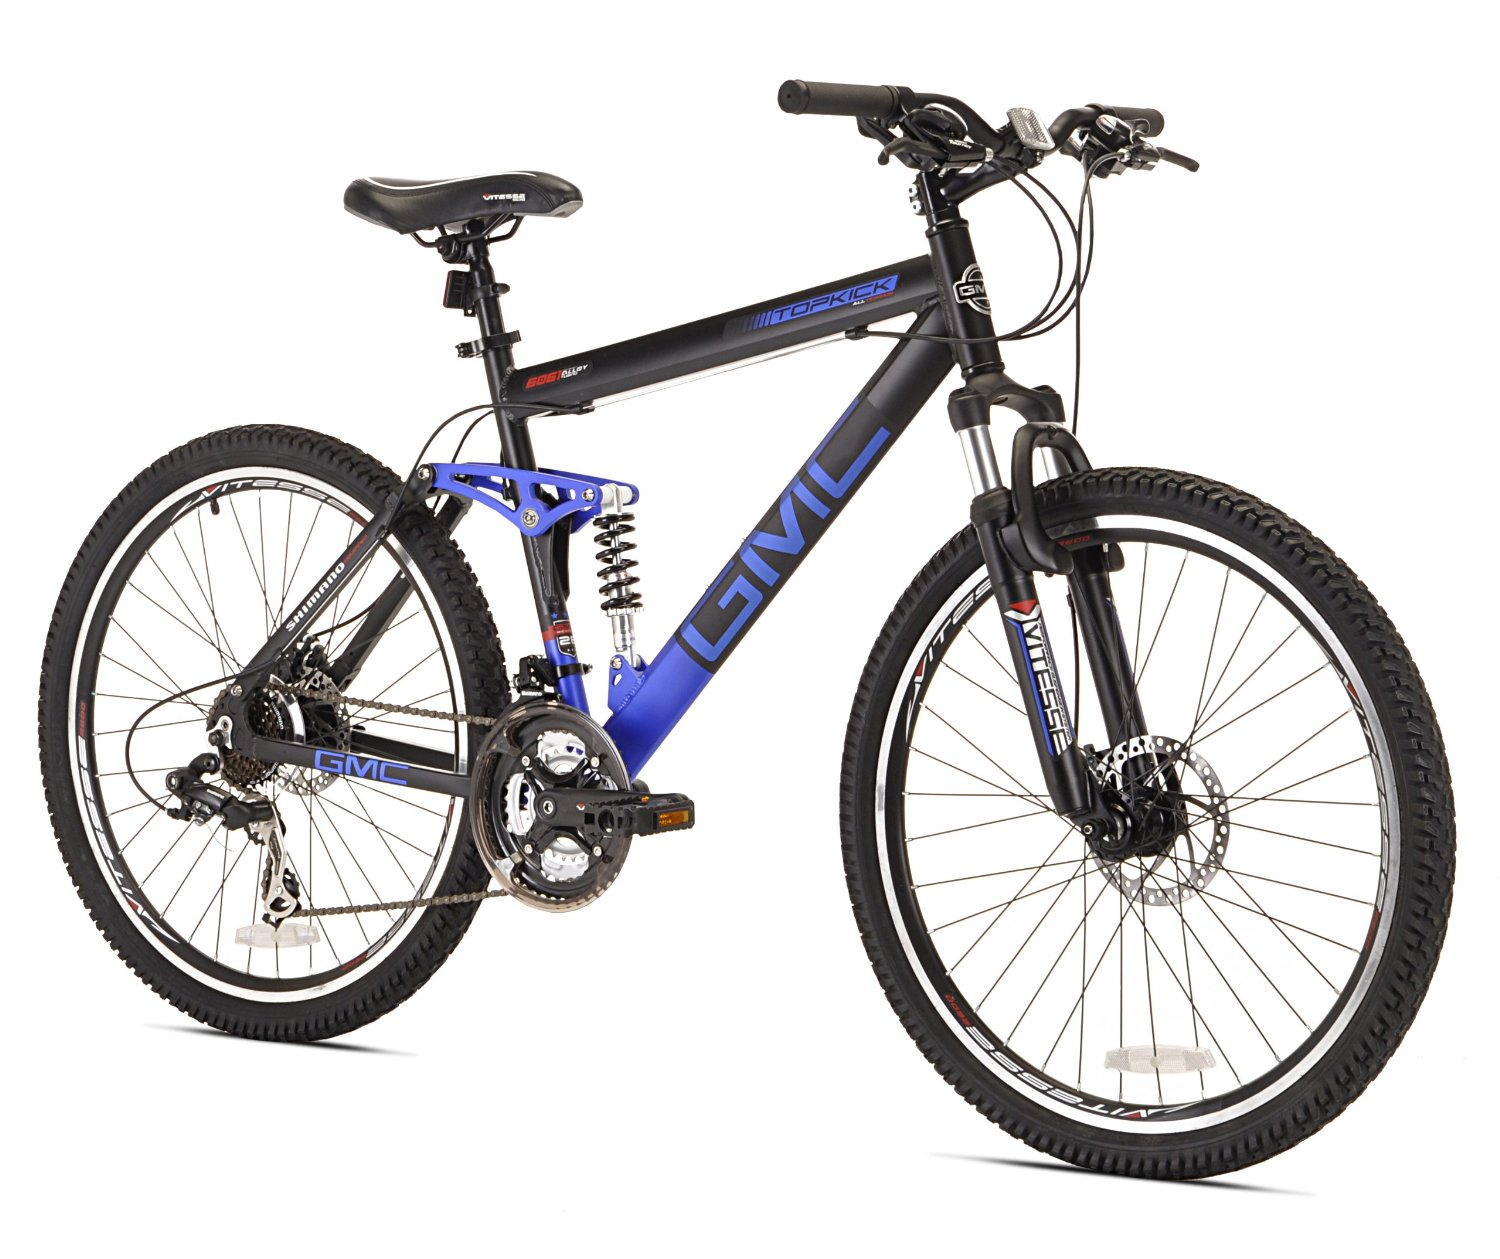 Gmc topkick dual suspension mountain bike review gmc bike for Suspension multiple cuisine